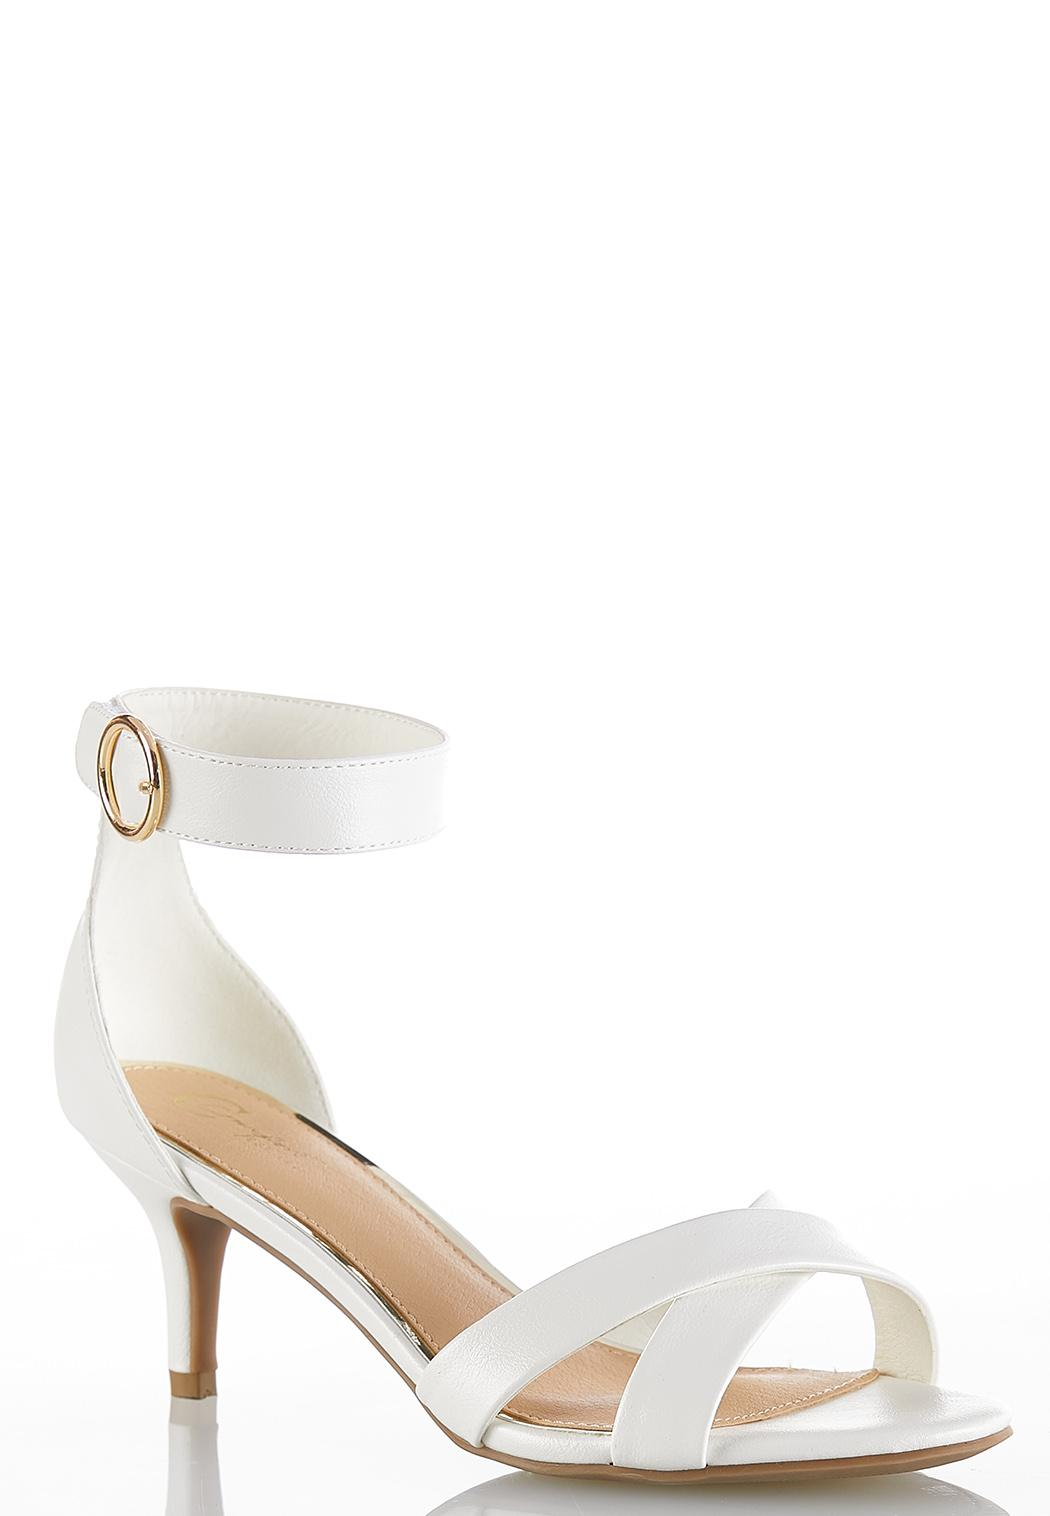 2577f901475c Ankle Strap Heeled Sandals alternate view · Ankle Strap Heeled Sandals